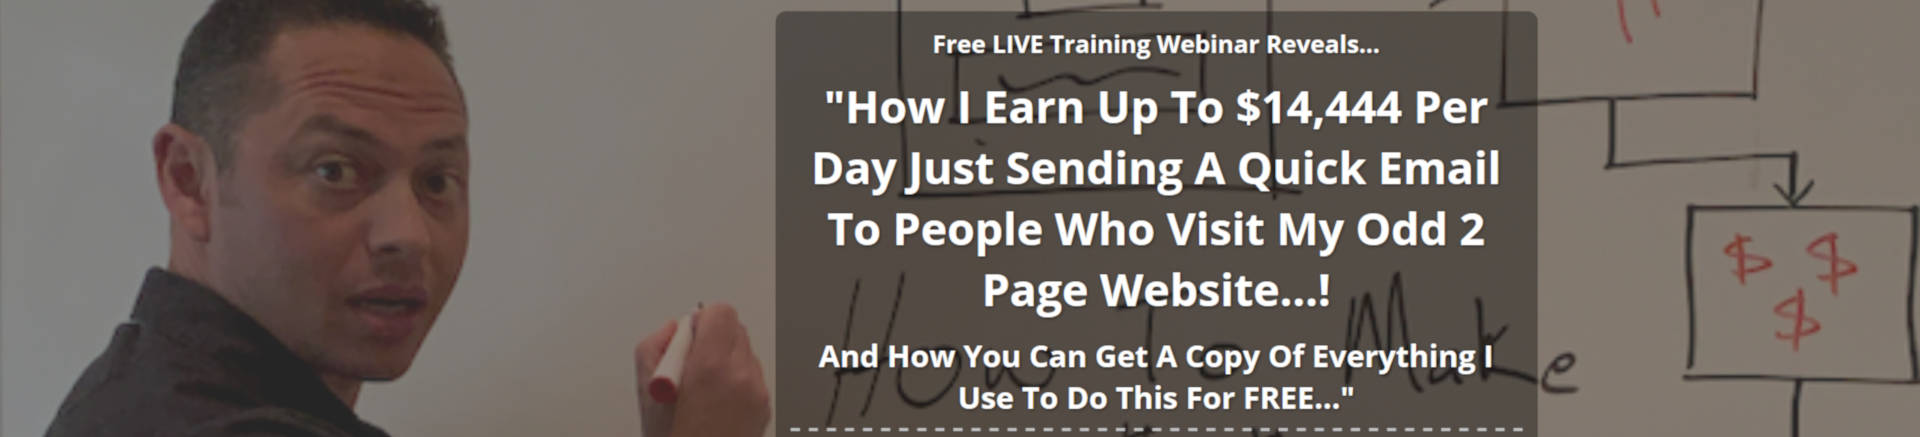 Training Program 1k A Day Fast Track Coupon Voucher Code March 2020